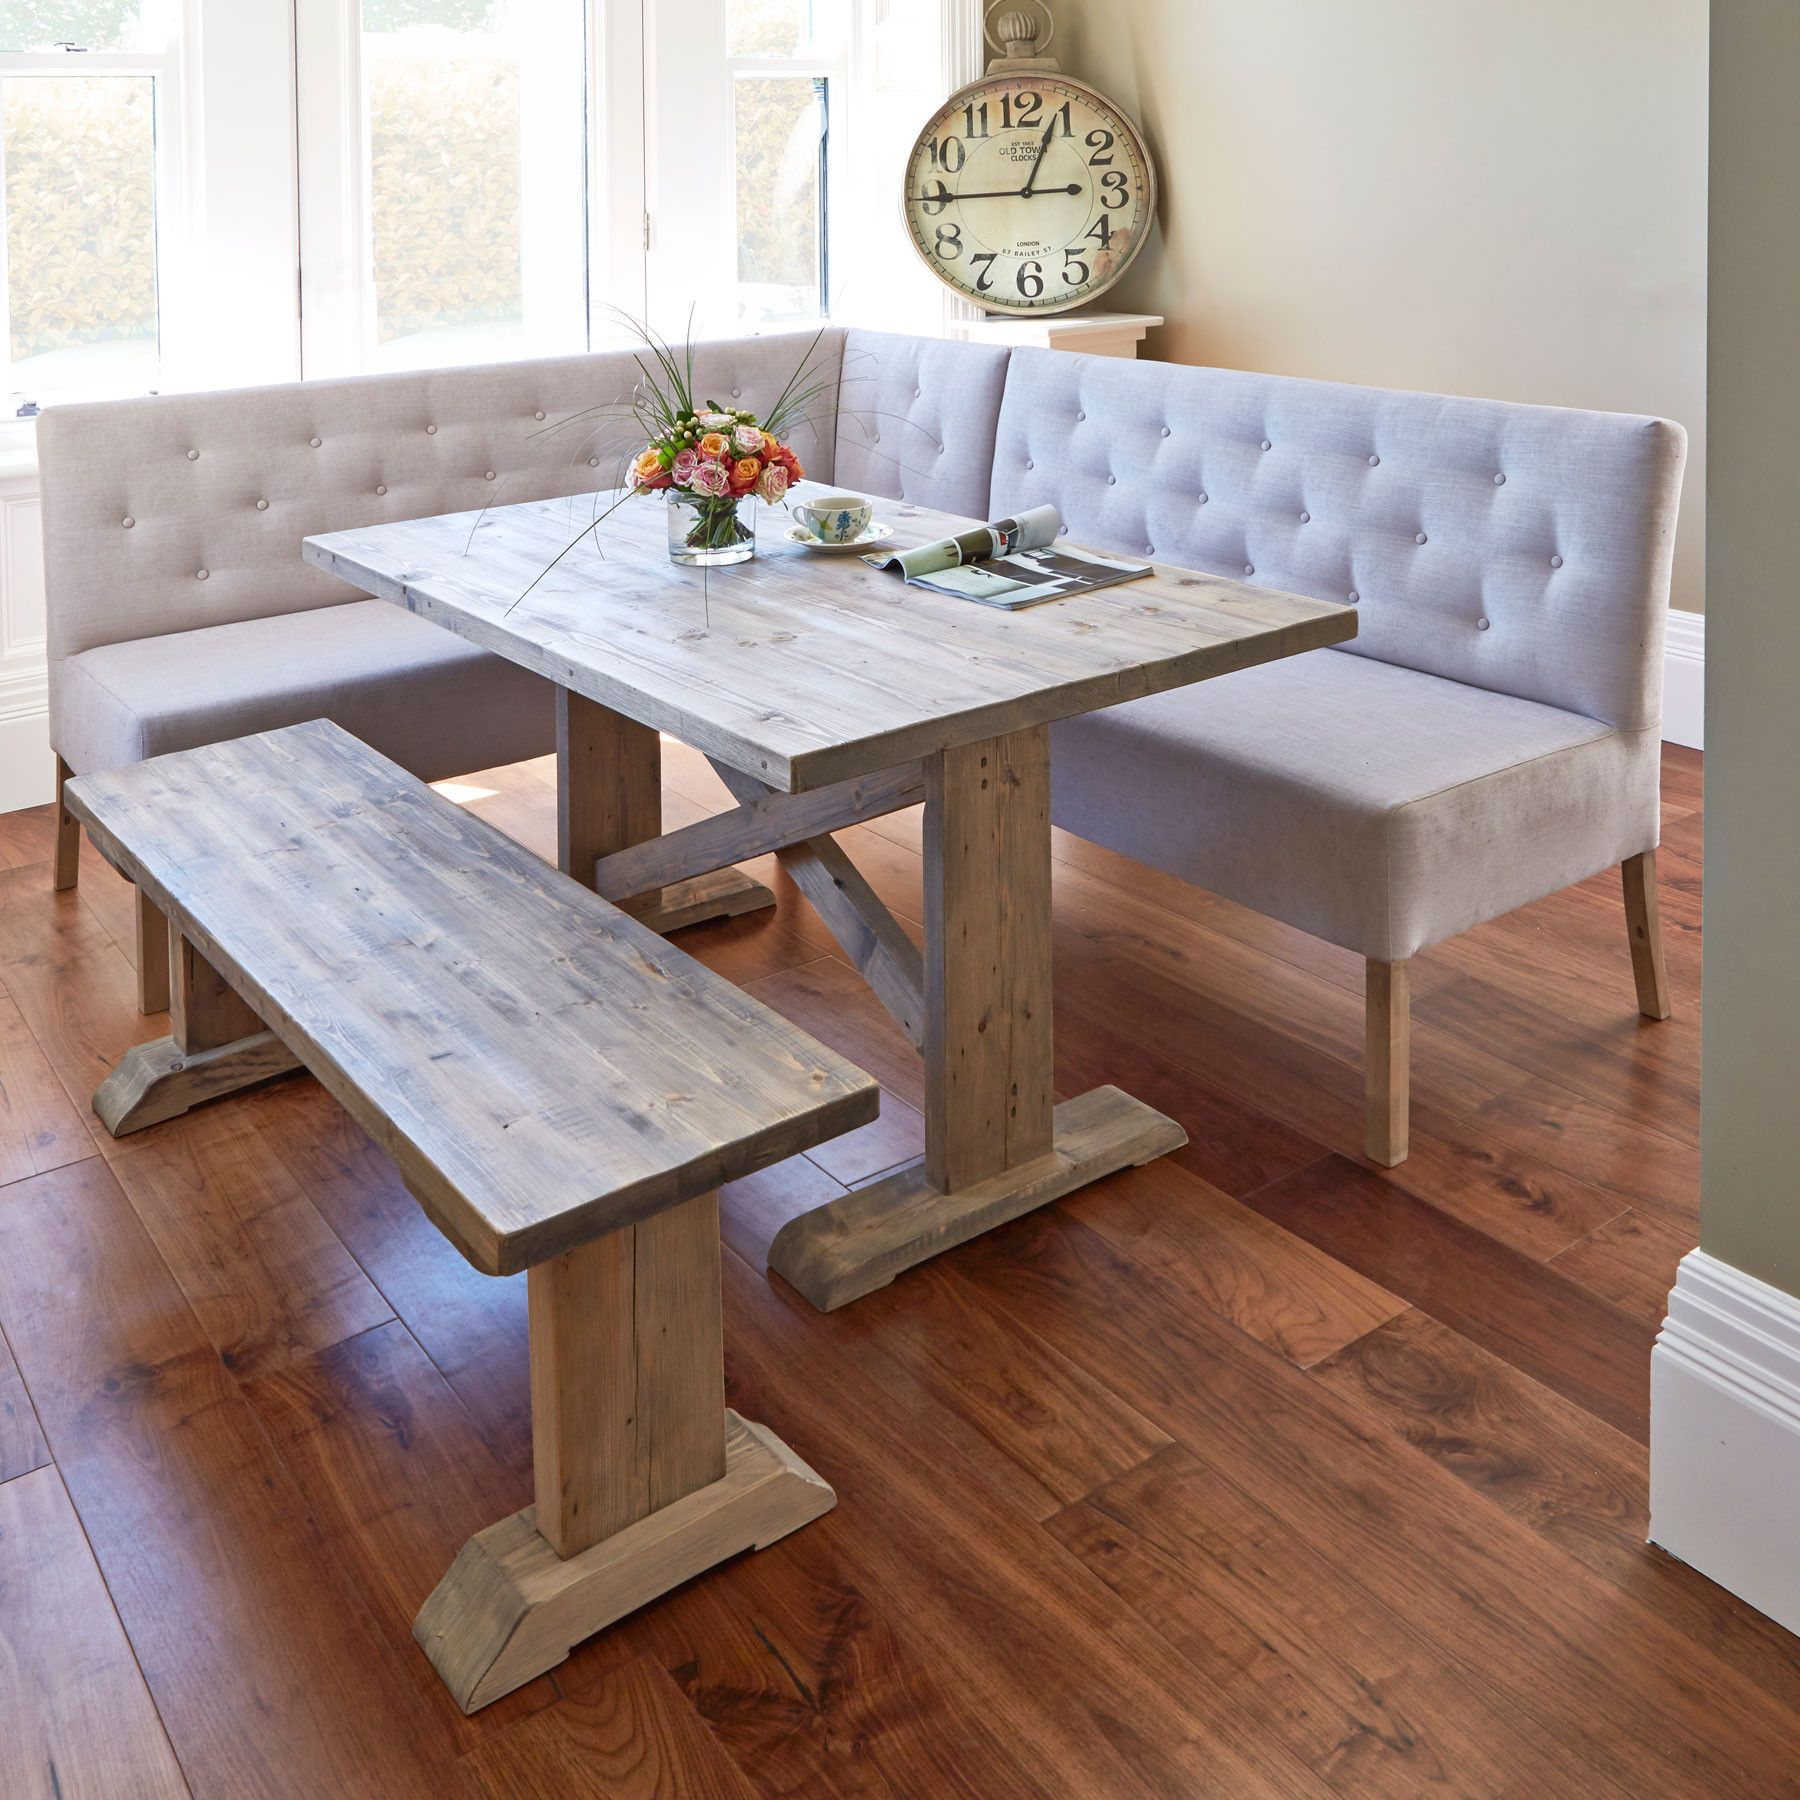 Alina Dining Table With Corner And Small Bench Basement Alina Dining Table  With Corner And Small